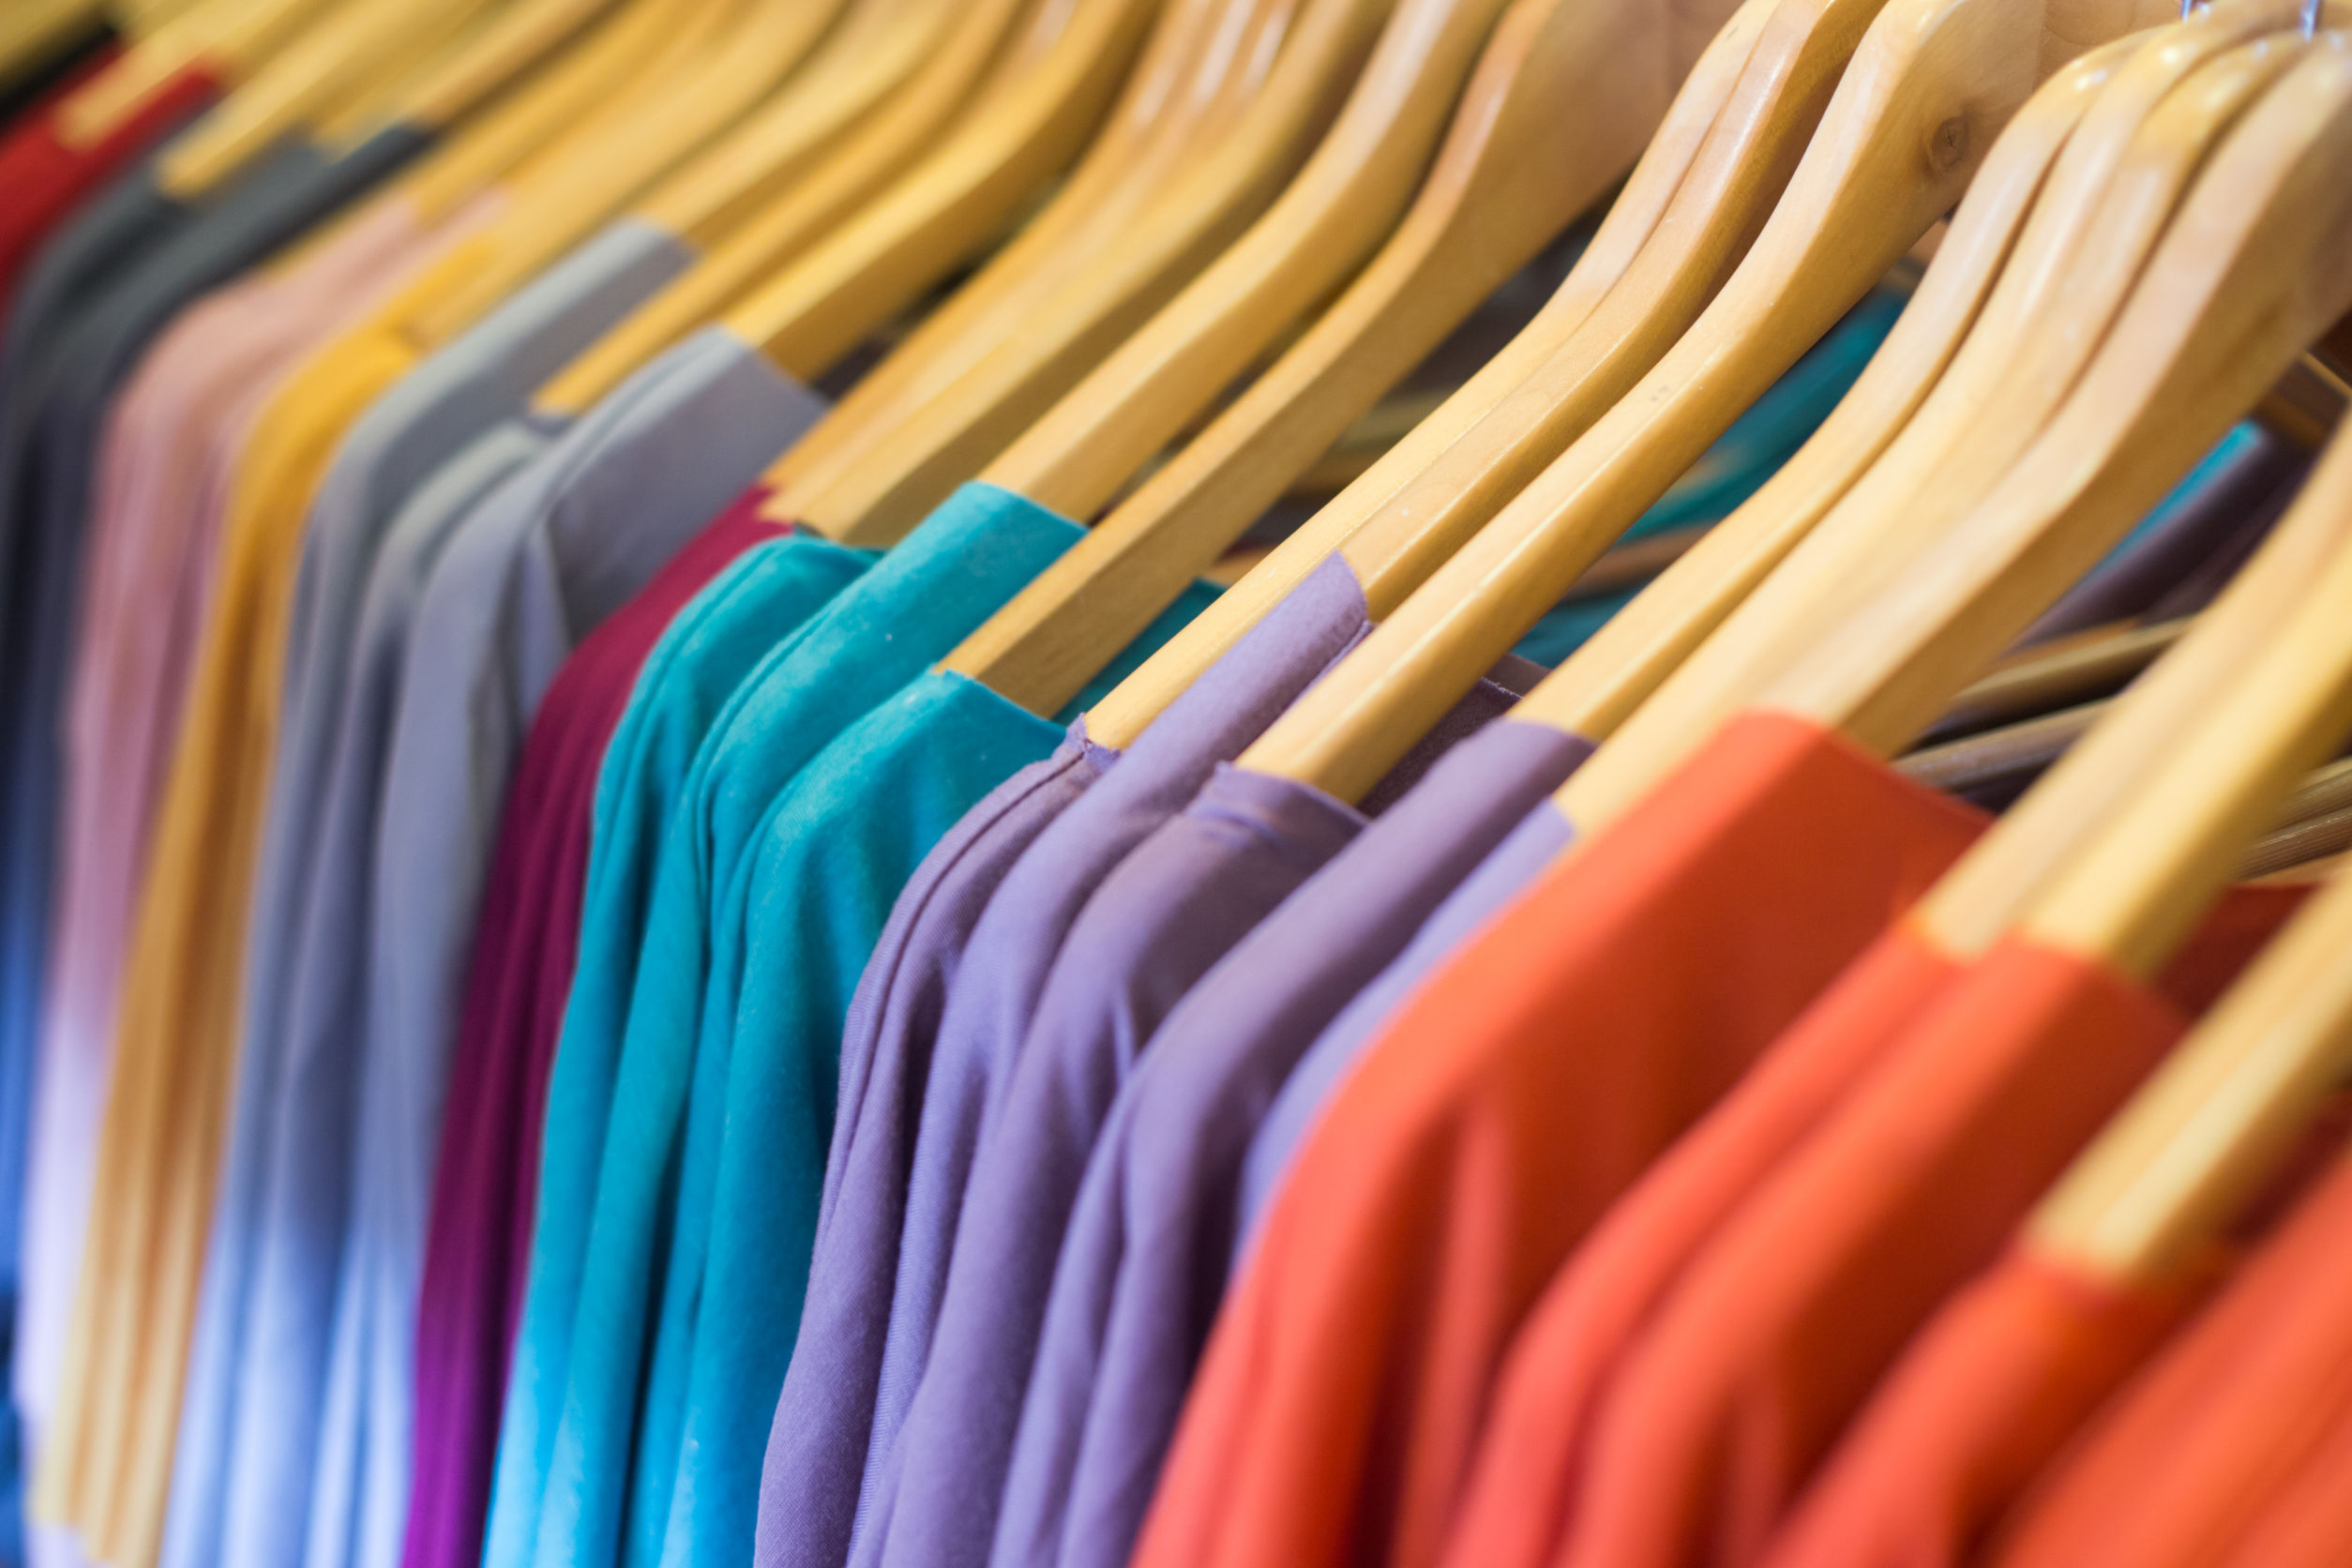 30967956 - picture of the clothes in the retail store